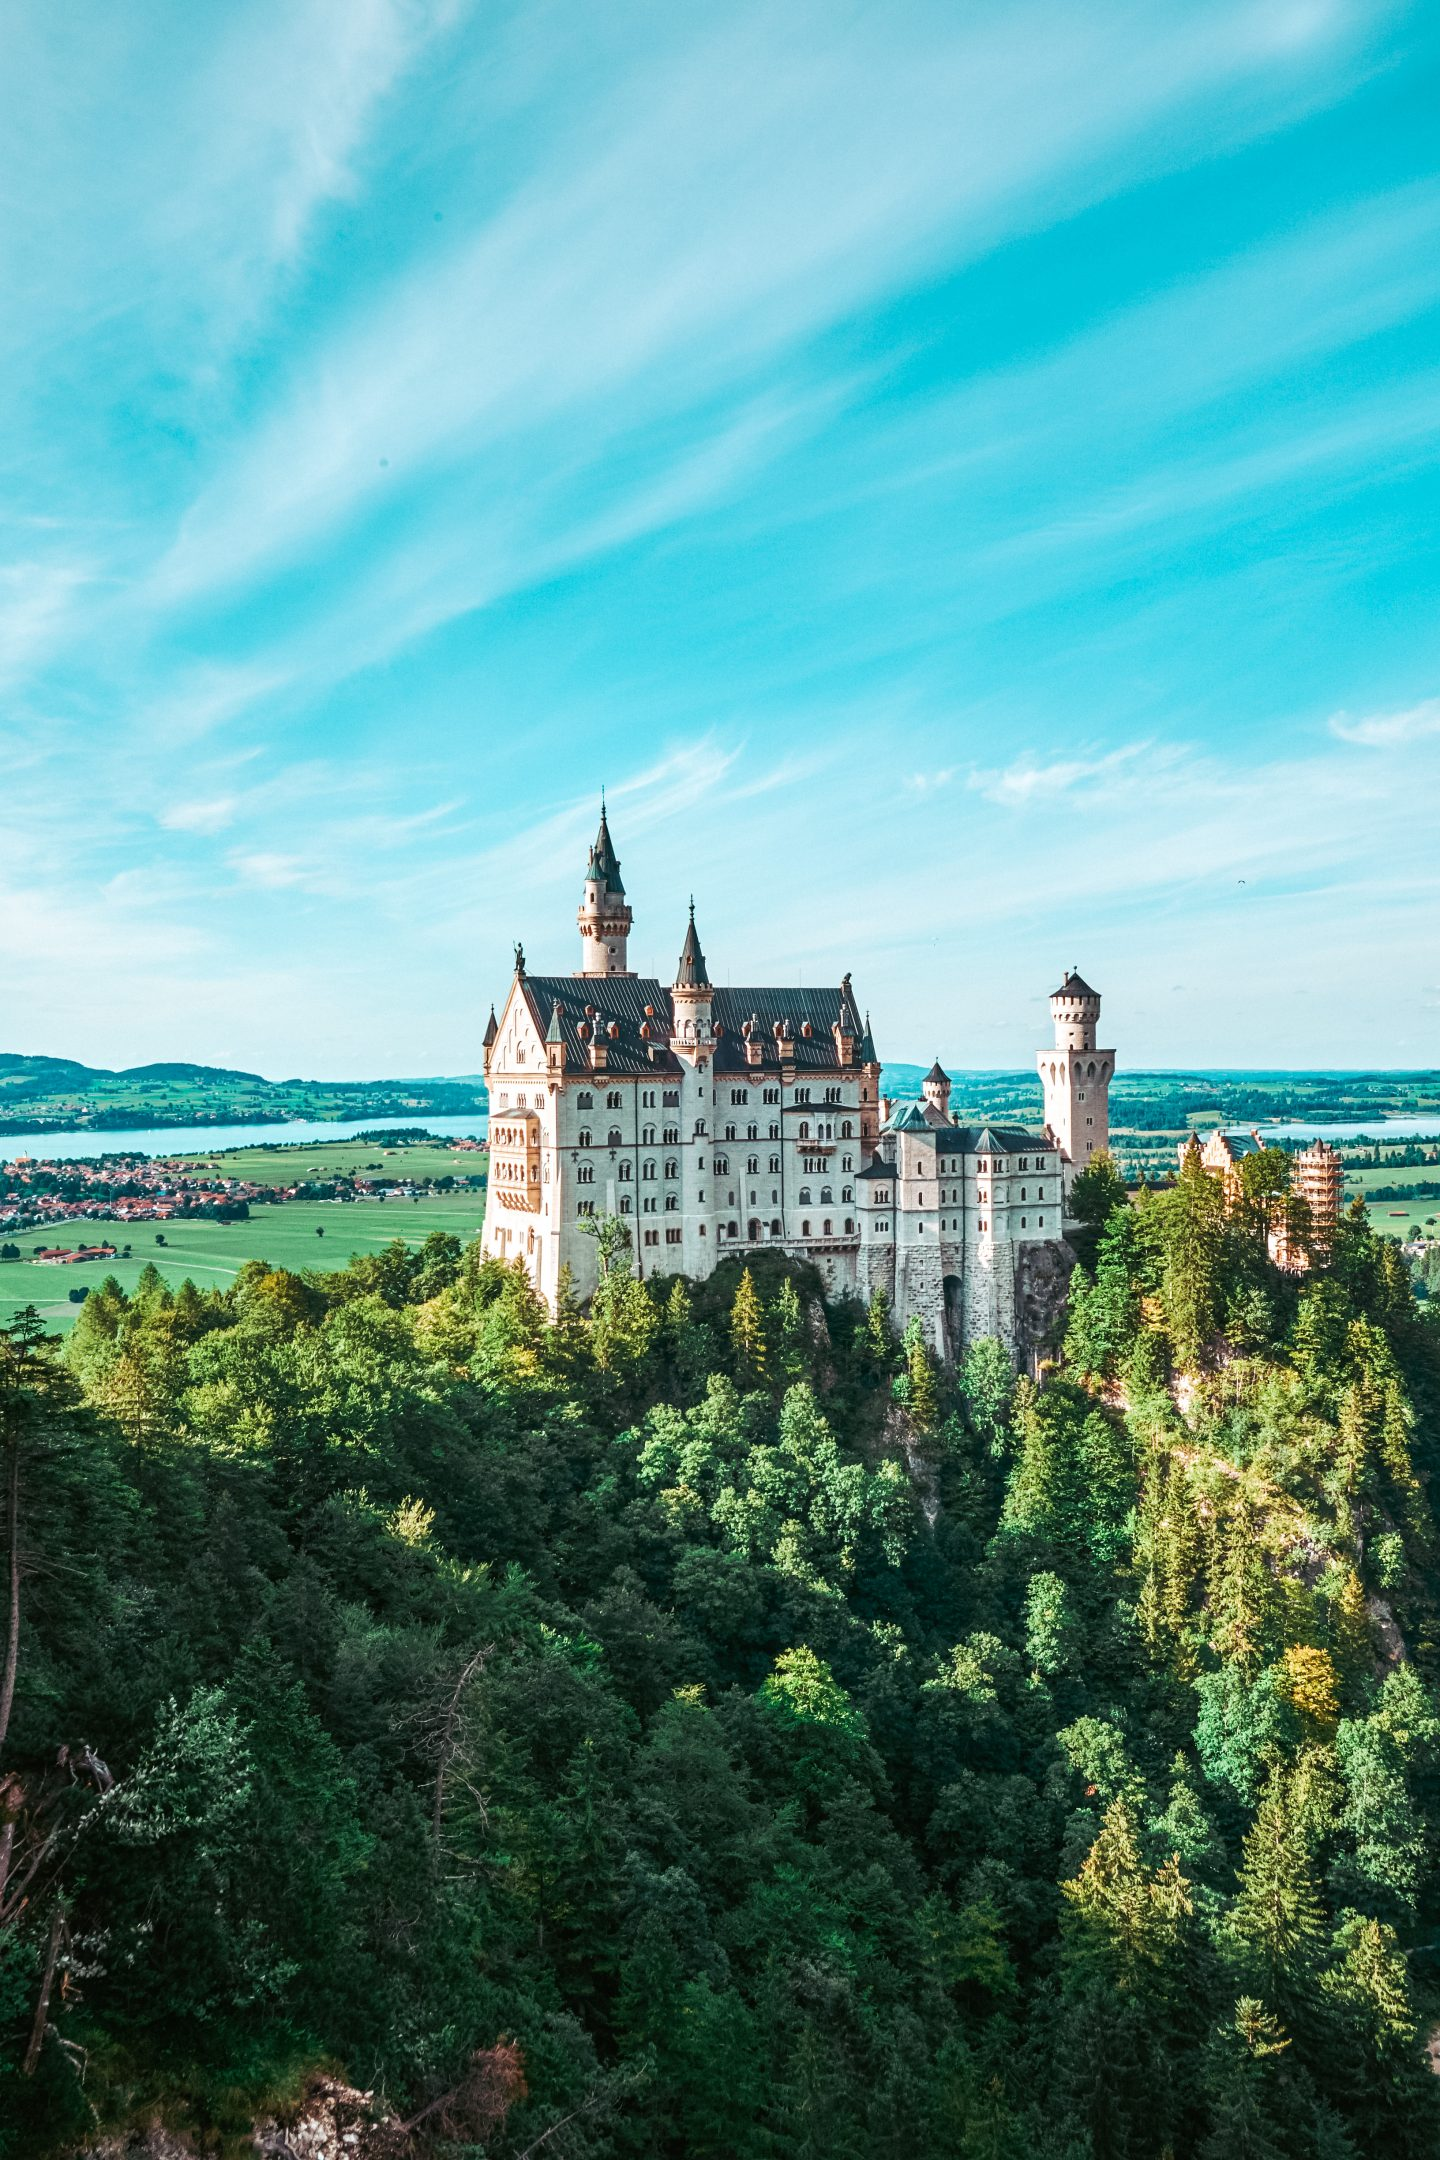 neuschwanstein-castle-germany-bavaria-disney-castle-germany